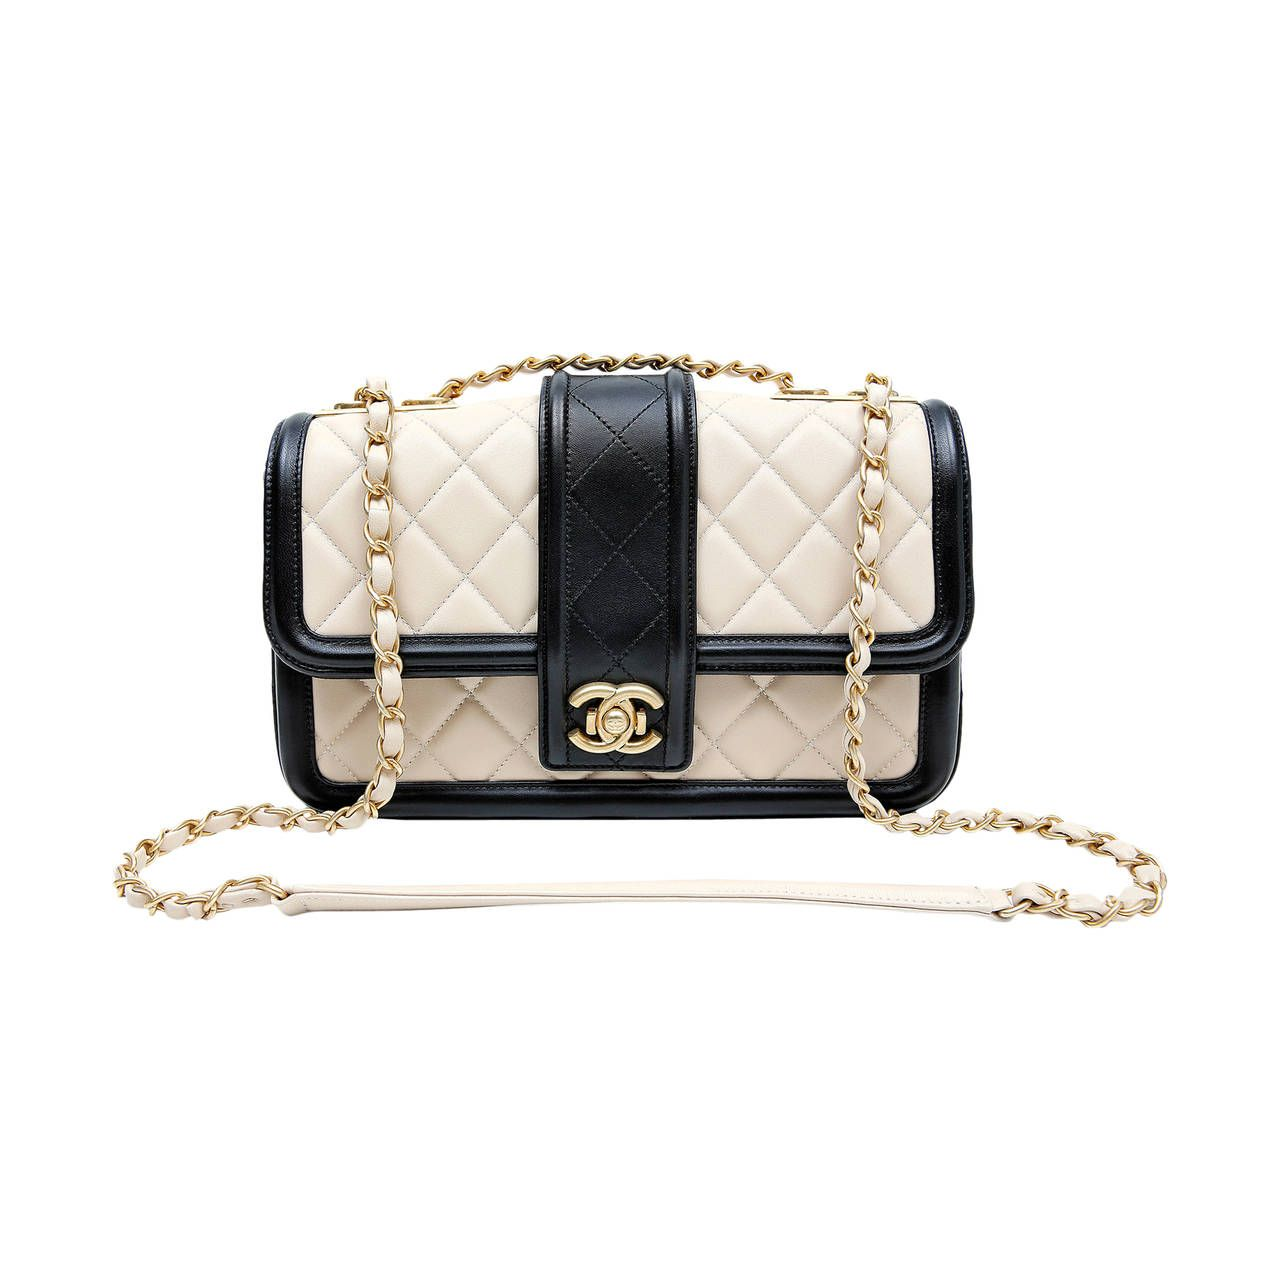 9041dc3db9a2 Chanel Beige Leather Black Trim Flap Bag   From a collection of rare  vintage shoulder bags